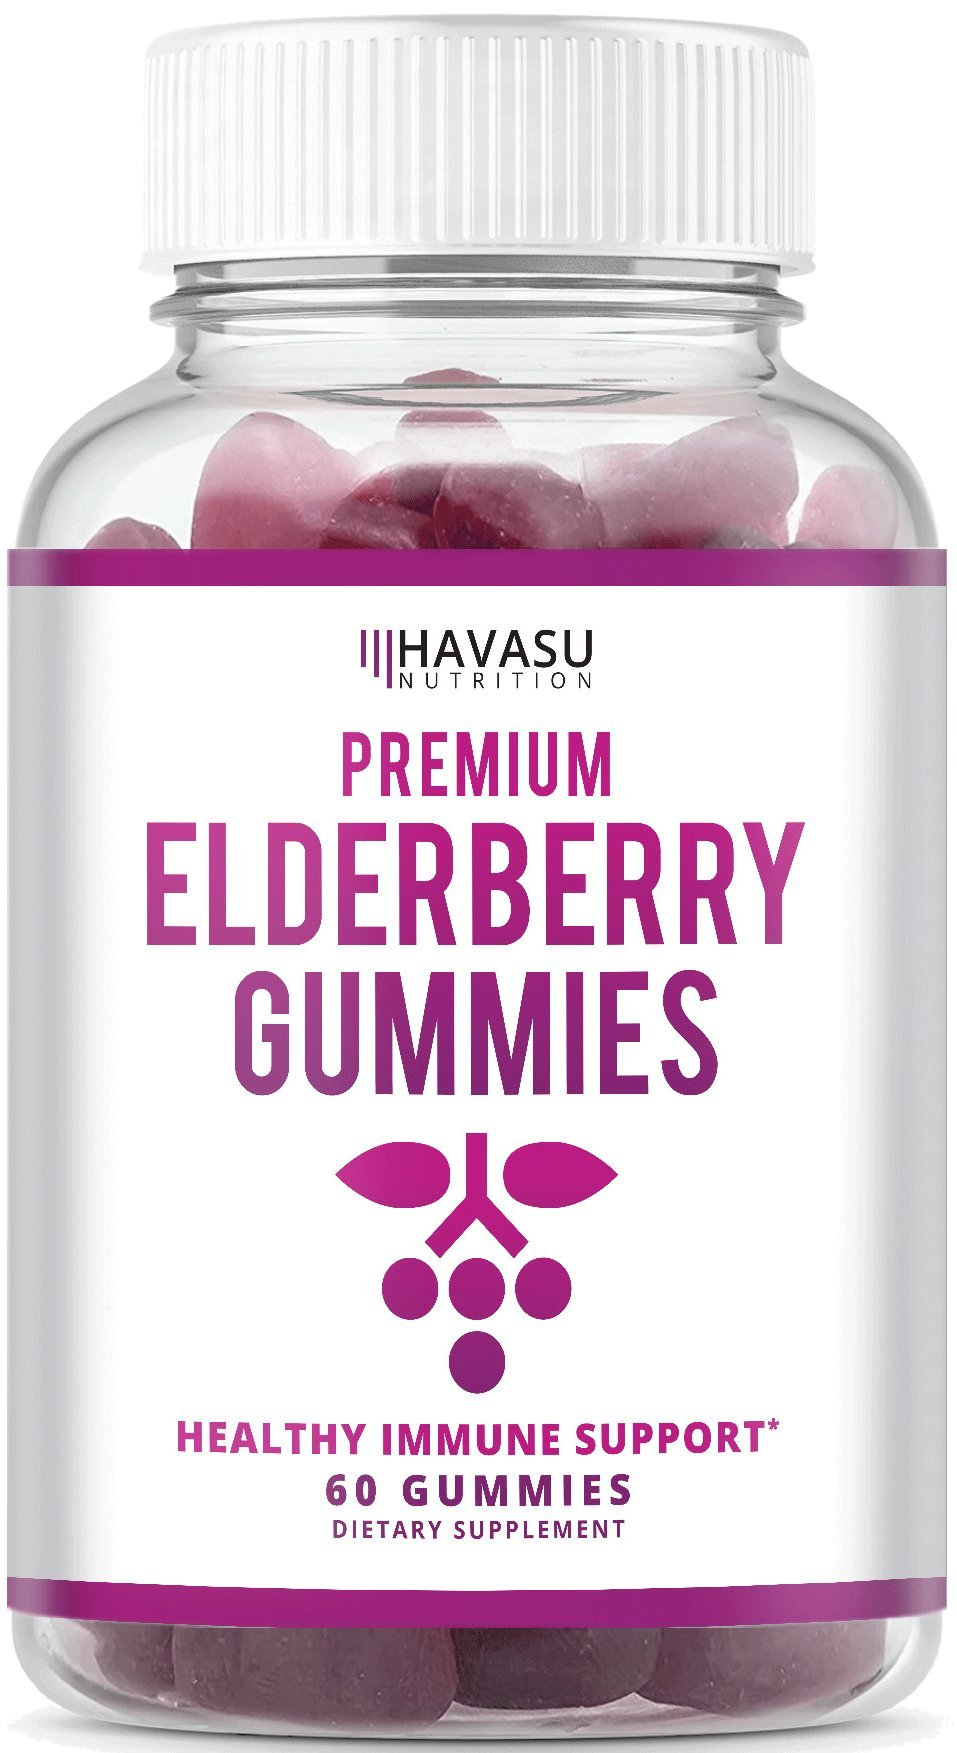 ee32fd0e247 Elderberry Gummies - Supports Immune System Health - Made with Premium  Plant-Based Pectin - NO Gelatin